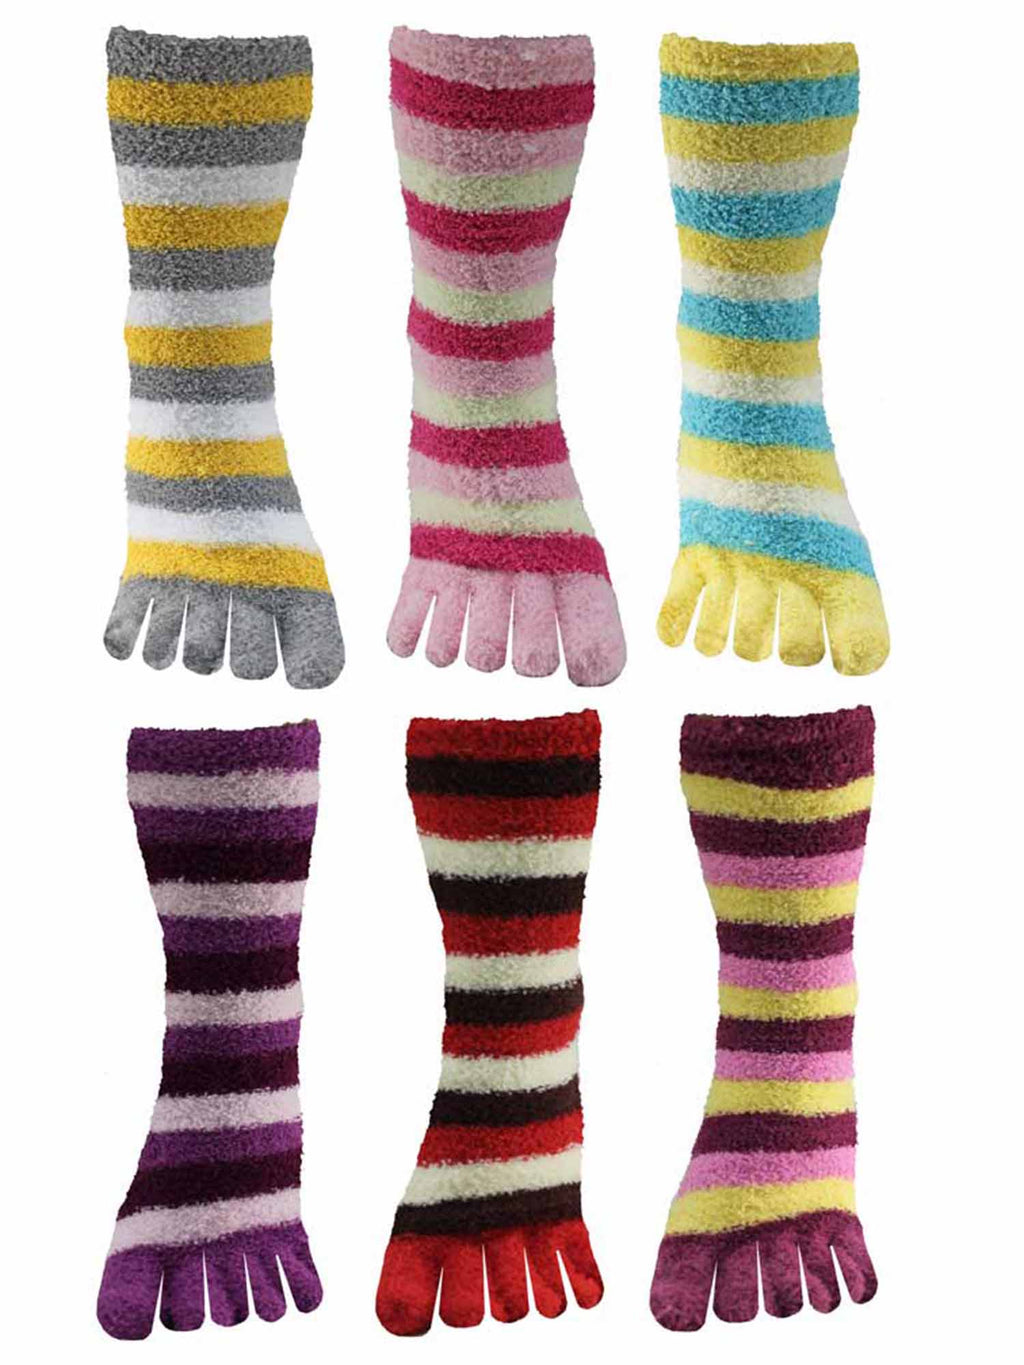 Assorted Multicolor Striped Fuzzy Toe Socks 6 Pack